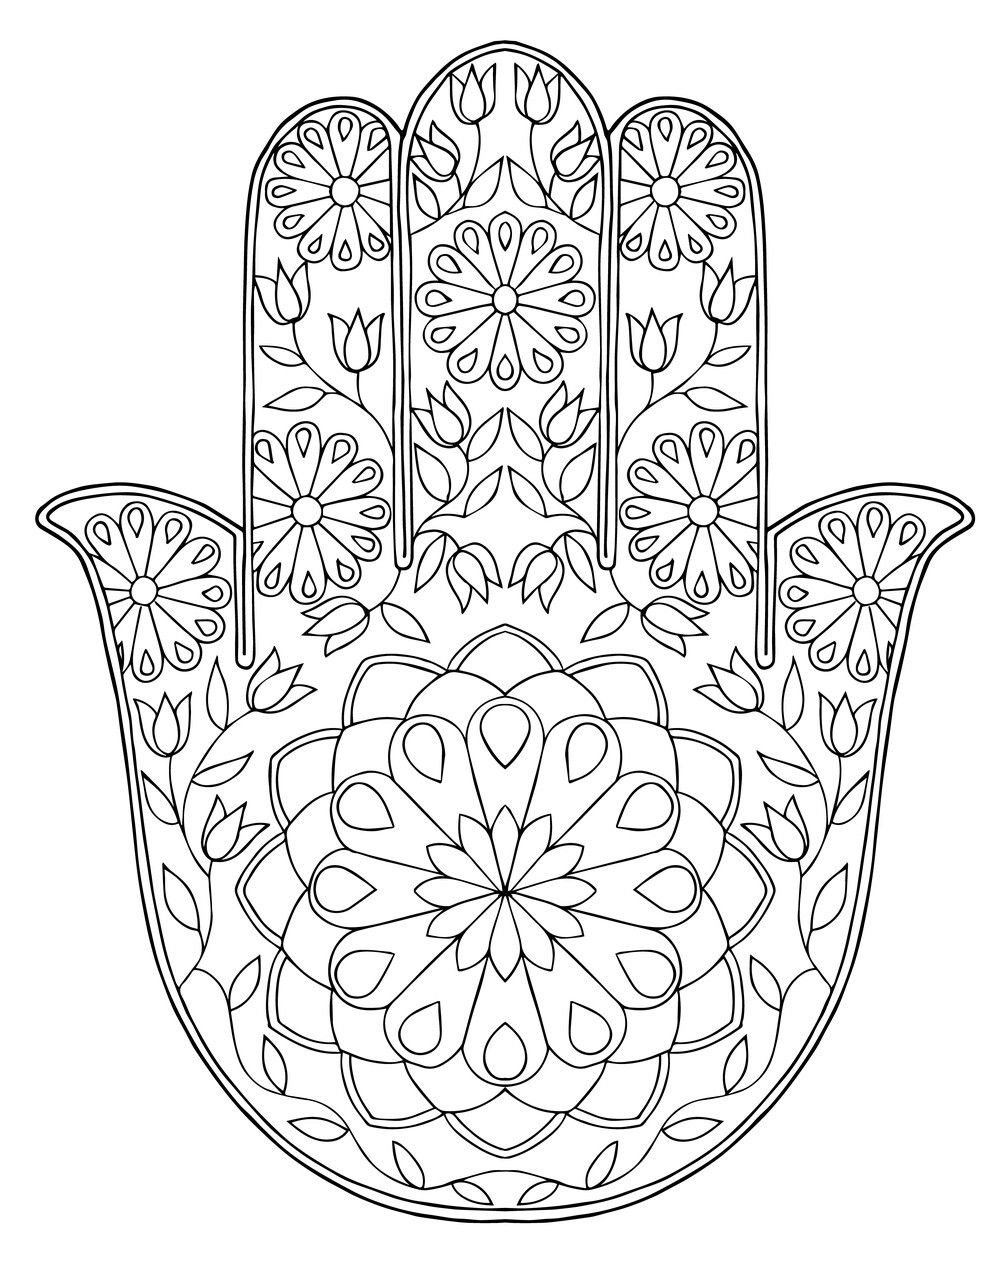 mandala coloring pages of sunday - photo#3